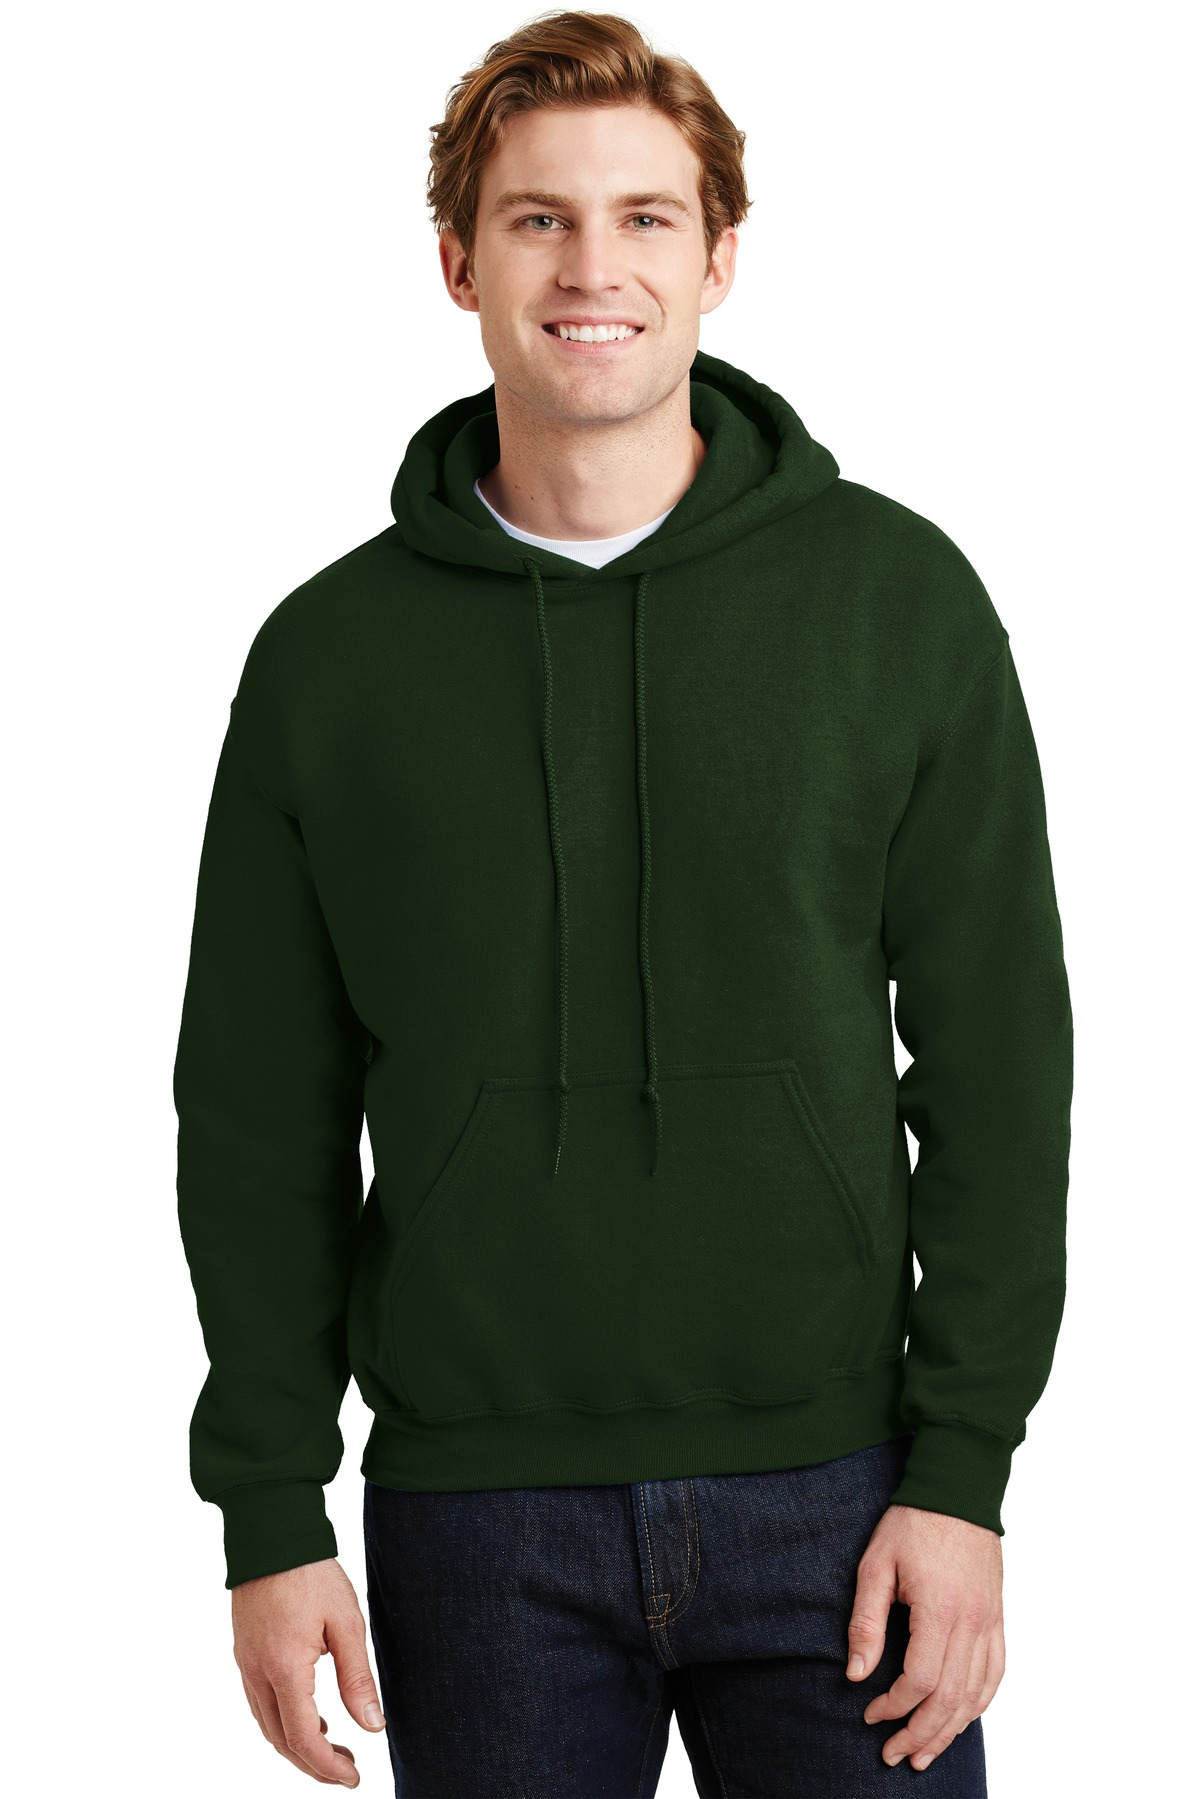 Gildan ®  - Heavy Blend ™  Hooded Sweatshirt.  18500 - Forest